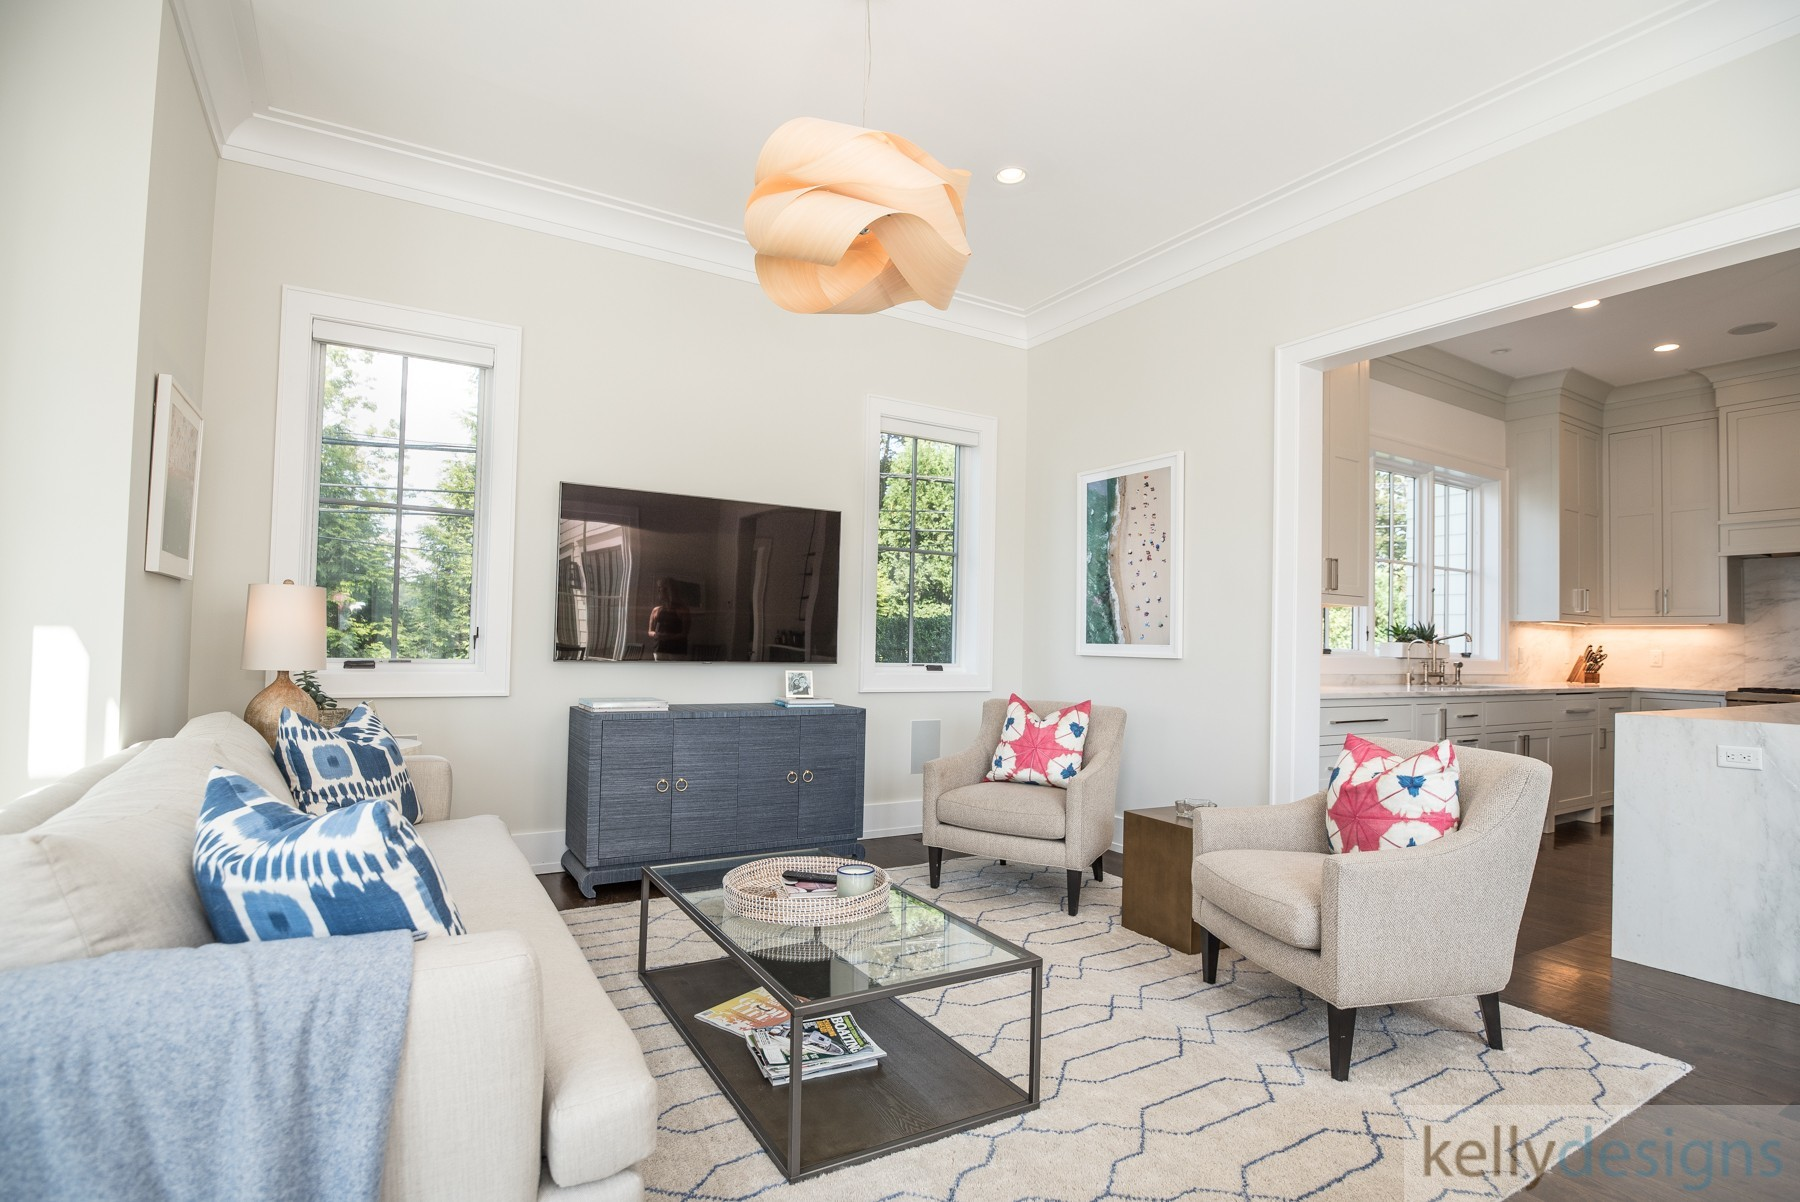 Brush Island Family Room - Interior Design By kellydesigns